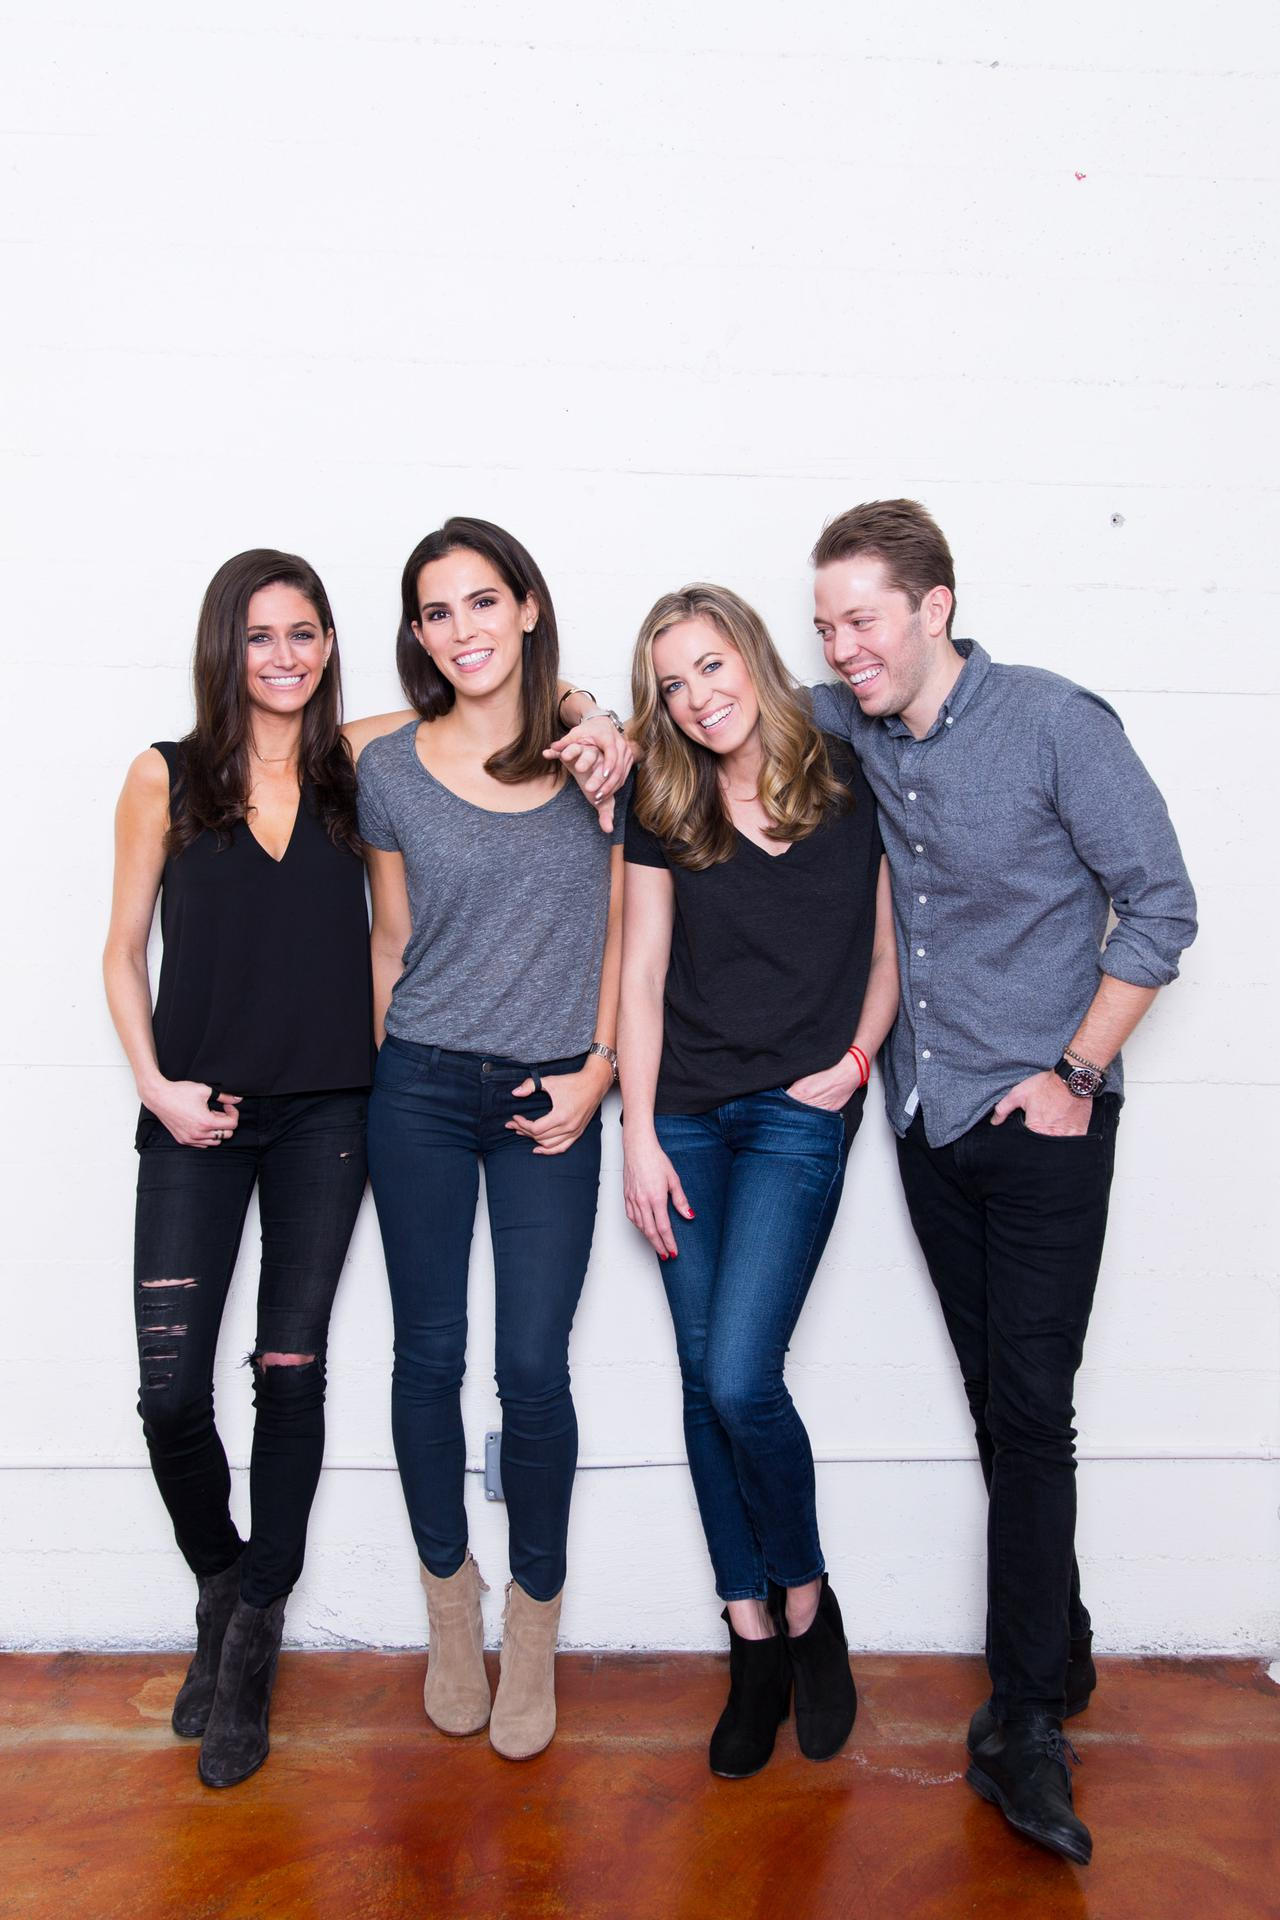 Co-founders of Little Spoon, Lisa Barnett, Michelle Muller, Angela Vranich, Ben Lewis